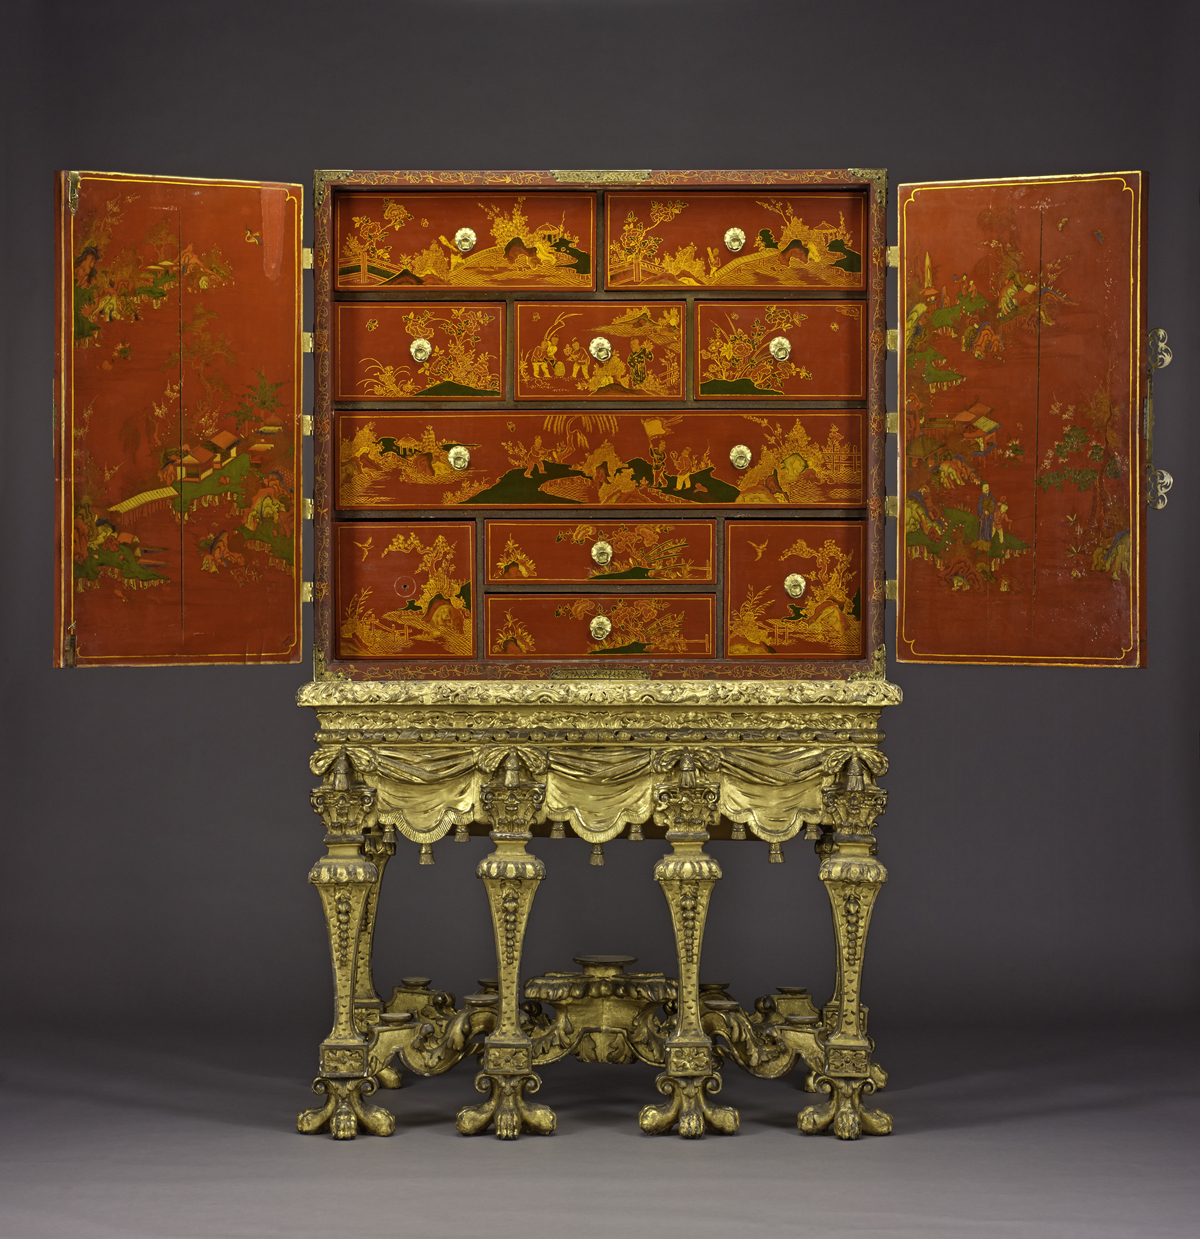 A.1921.44 - Cabinet of pine and oak with brass mounts, painted with pseudo-Chinese scenes on a red lacquer ground: English, c. 1685 – 1695.